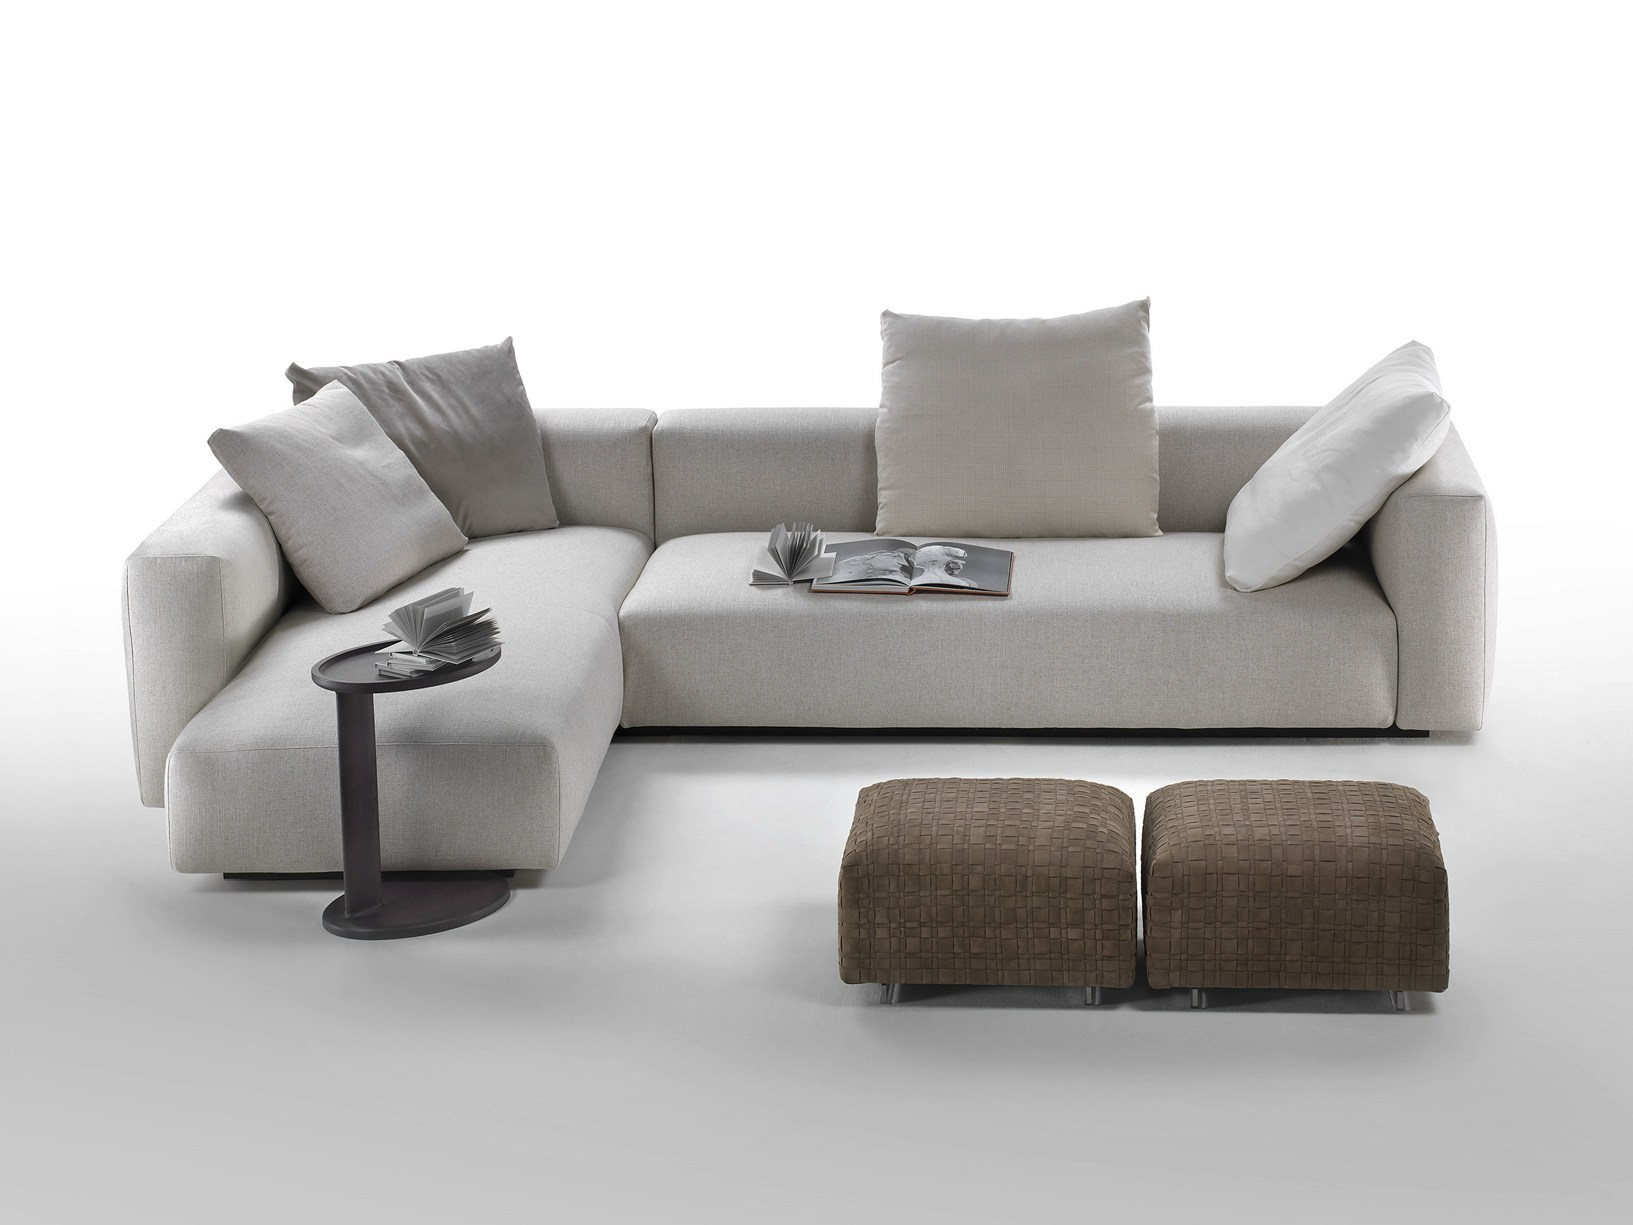 Antonio Citterio City Sofa Lario Modular Sofa By Antonio Citterio For Flexform Sohomod Blog